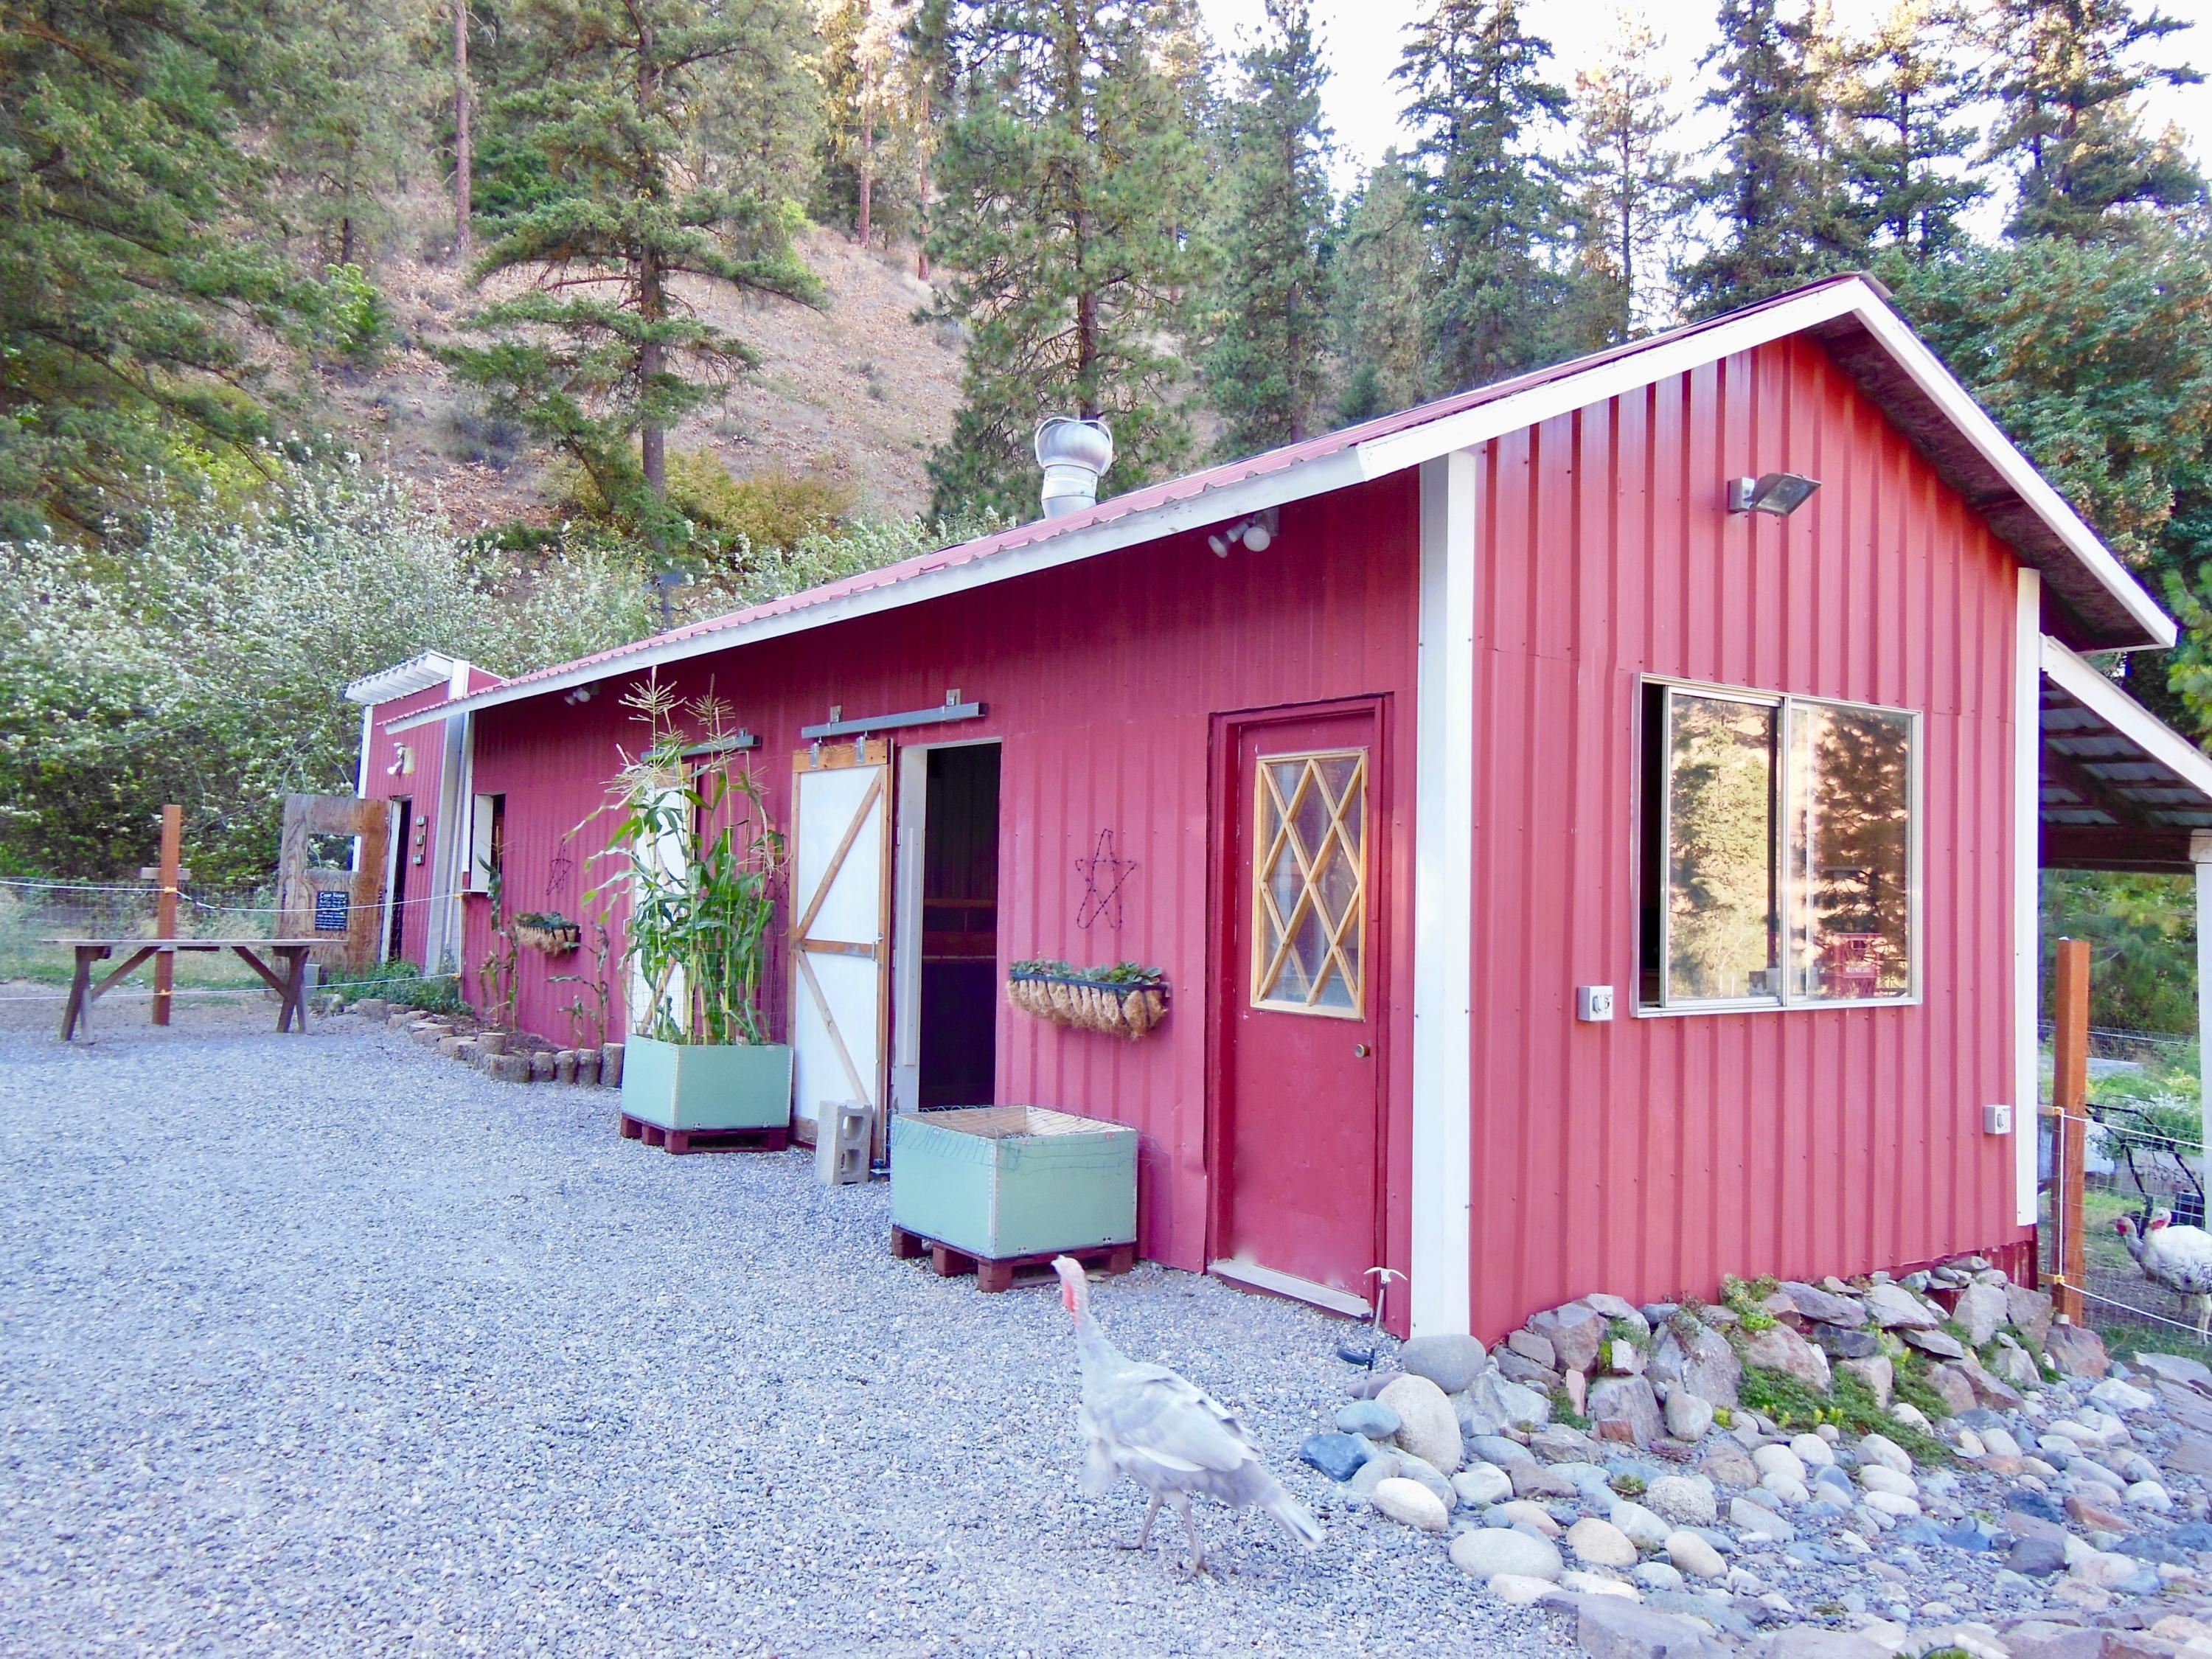 Listing: 4400 Brisky Canyon Rd, Cashmere, WA.| MLS# 716976 ...